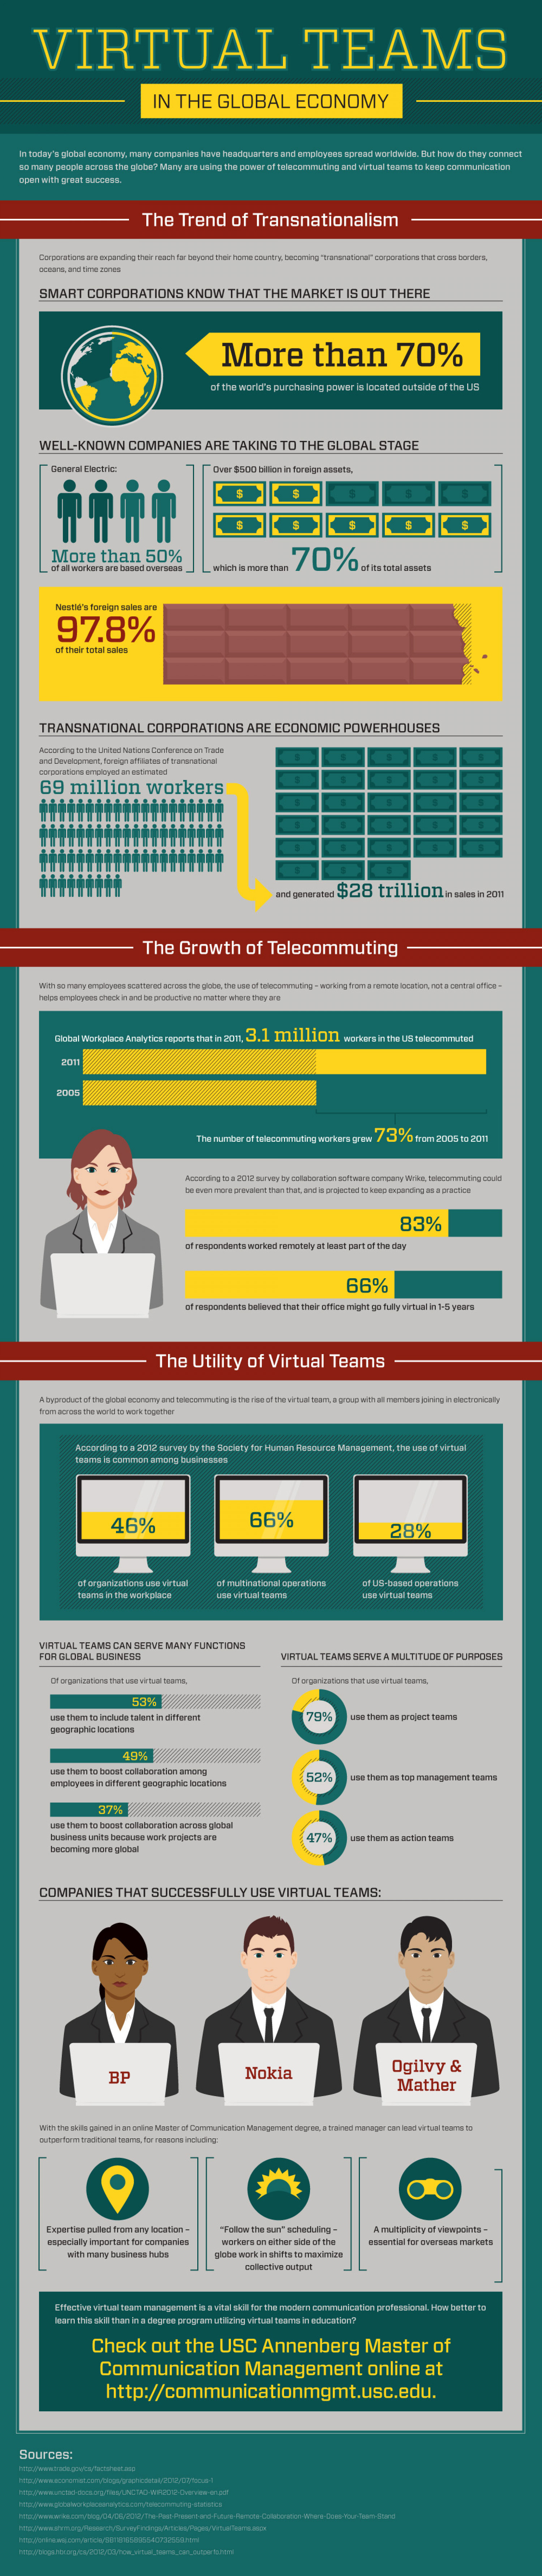 Virtual Teams in the Global Economy Infographic